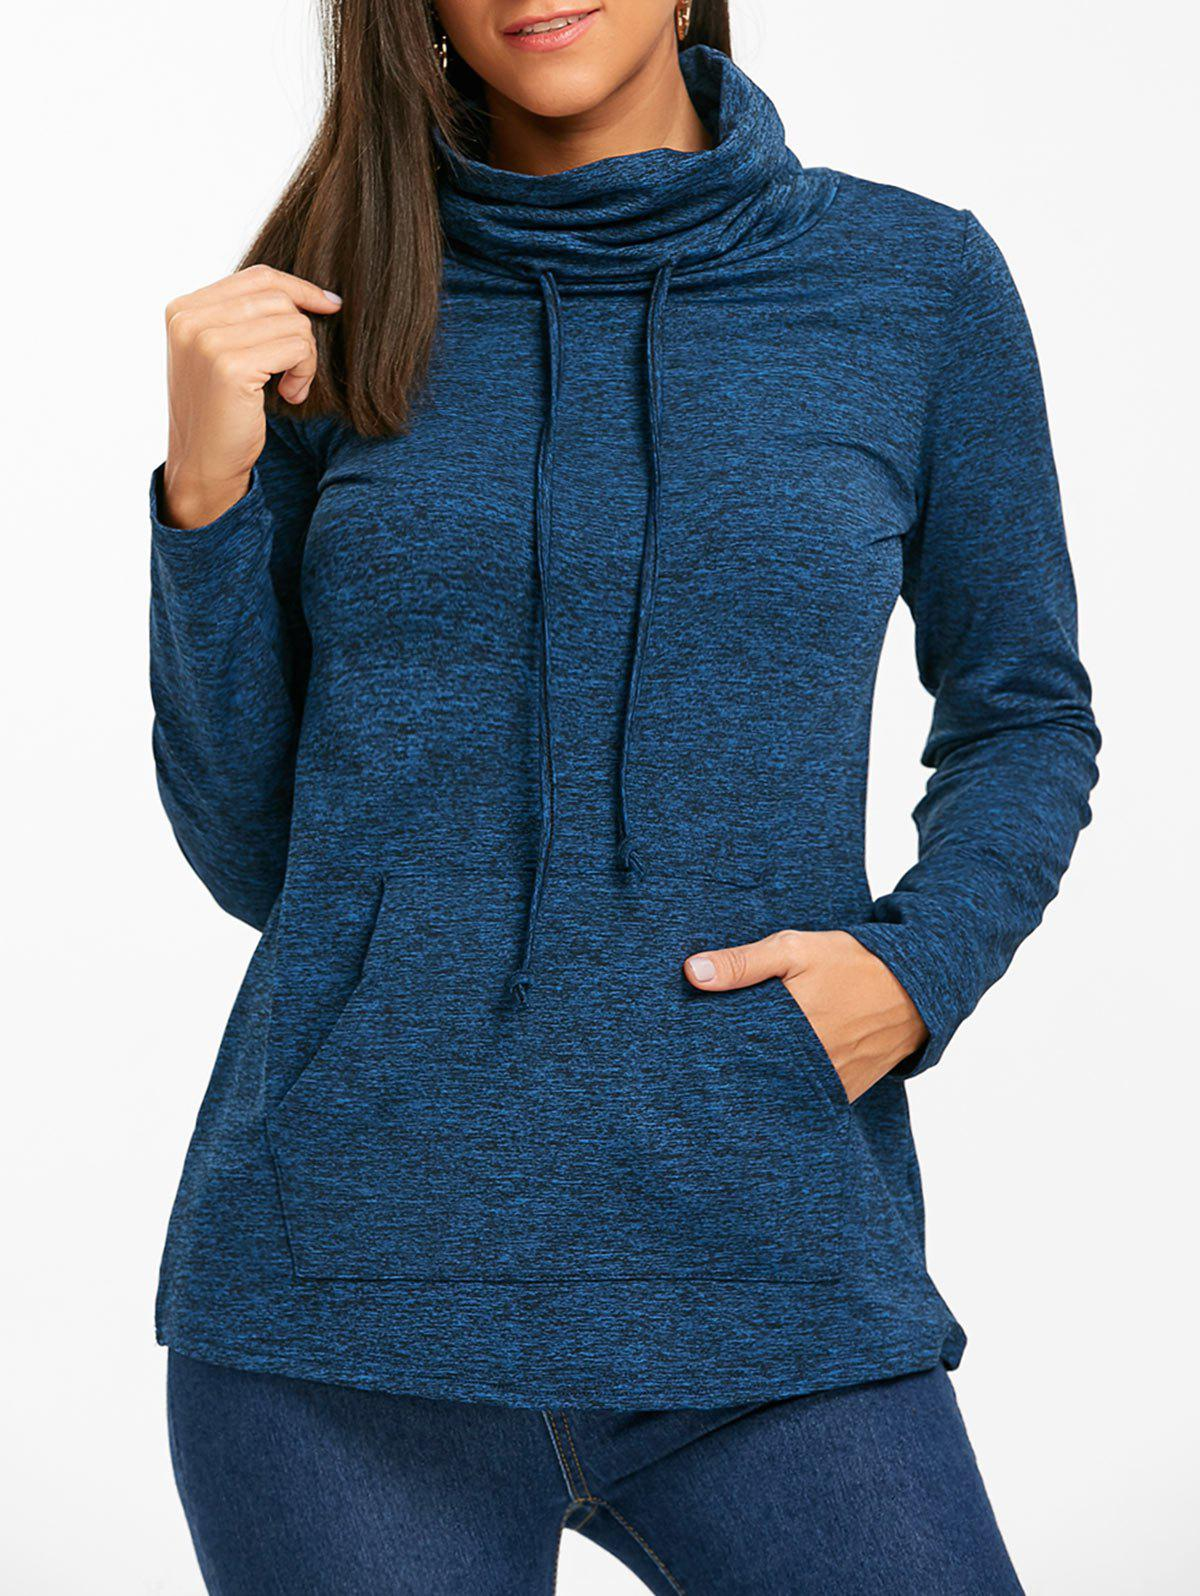 Cowl Neck Heathered Drawstring Sweatshirt - BLUE S